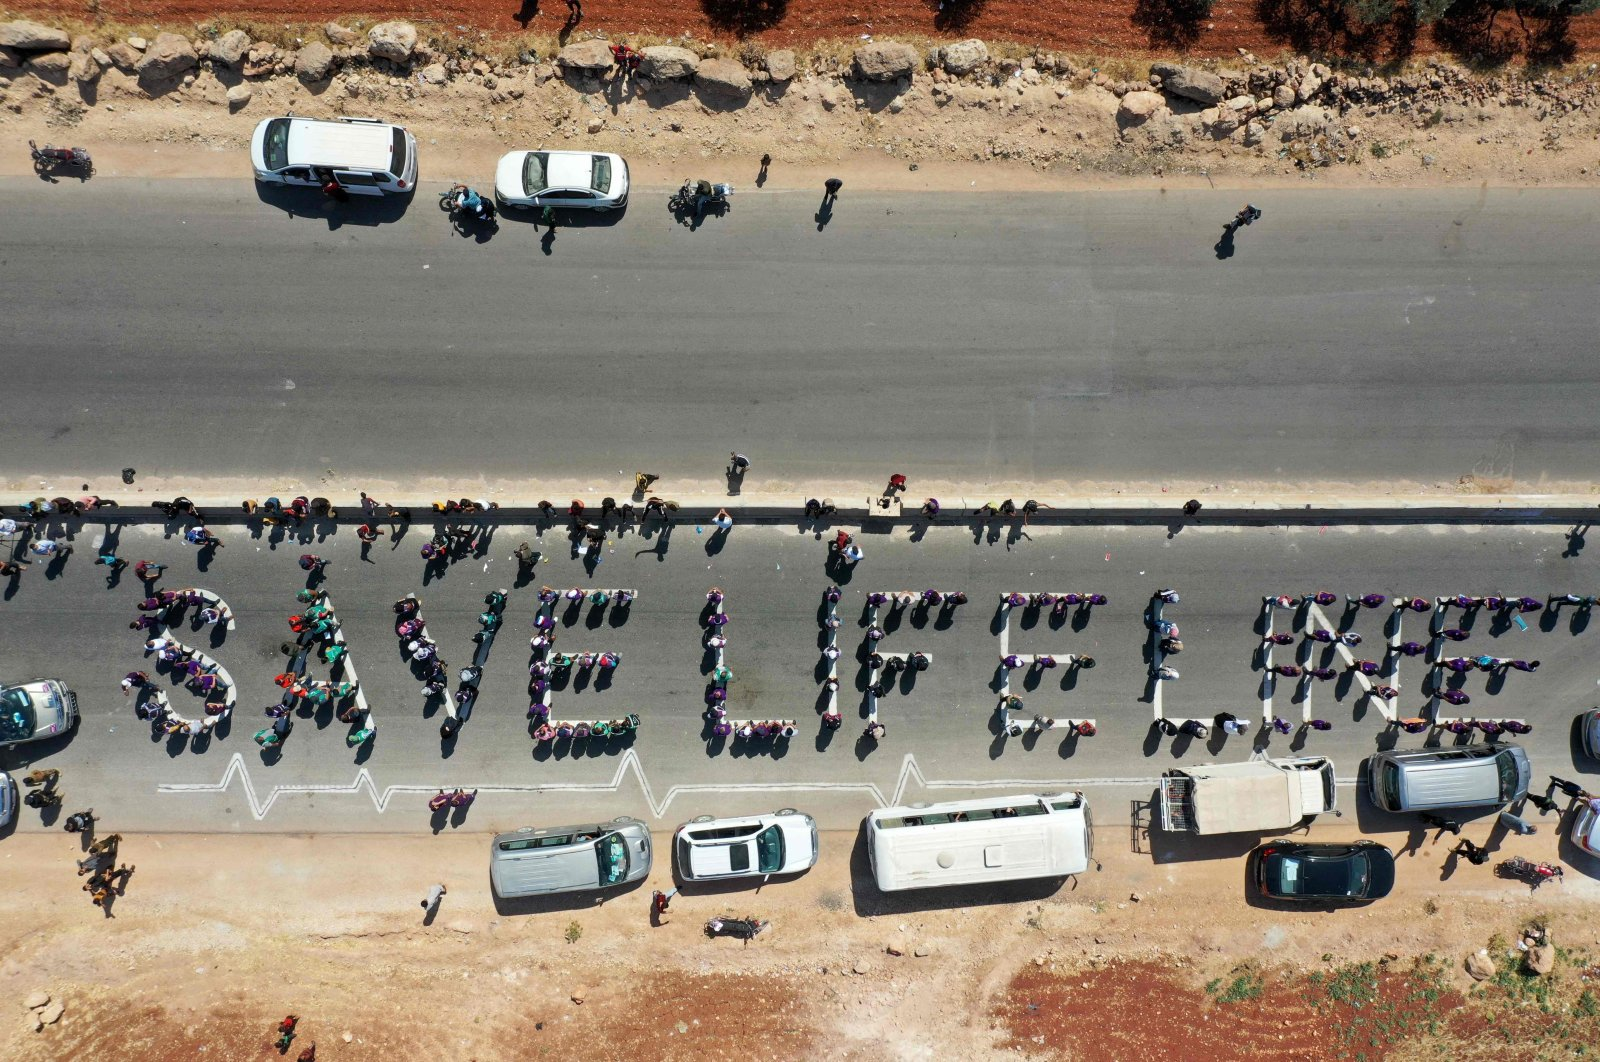 A human chain is formed by workers from the civil society, humanitarian aid and medical and rescue services in a vigil calling for maintaining a U.N. resolution authorizing the passage of humanitarian aid into Syria's opposition-held northwestern province of Idlib, July 2, 2021 (AFP Photo)